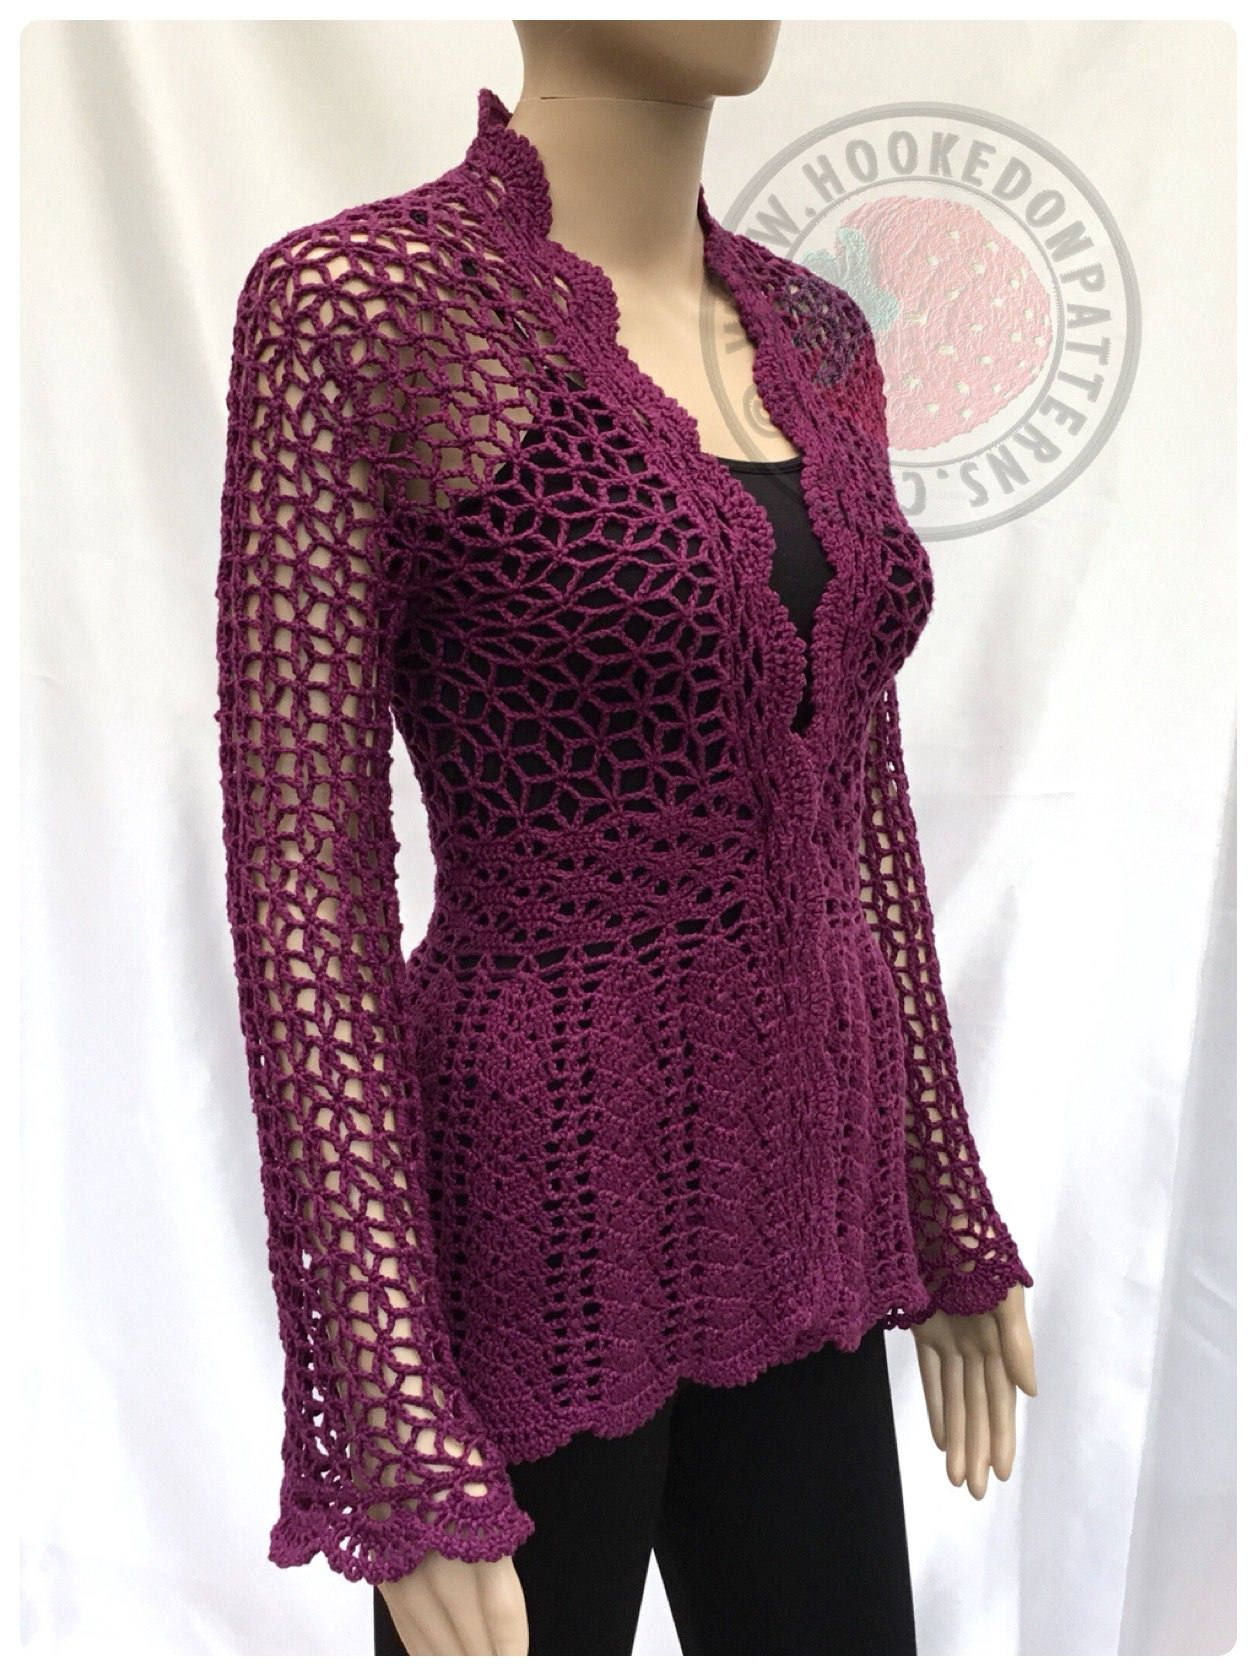 Floral Lace Cardigan Crochet PDF Pattern Sizes S M L | Crochet ...